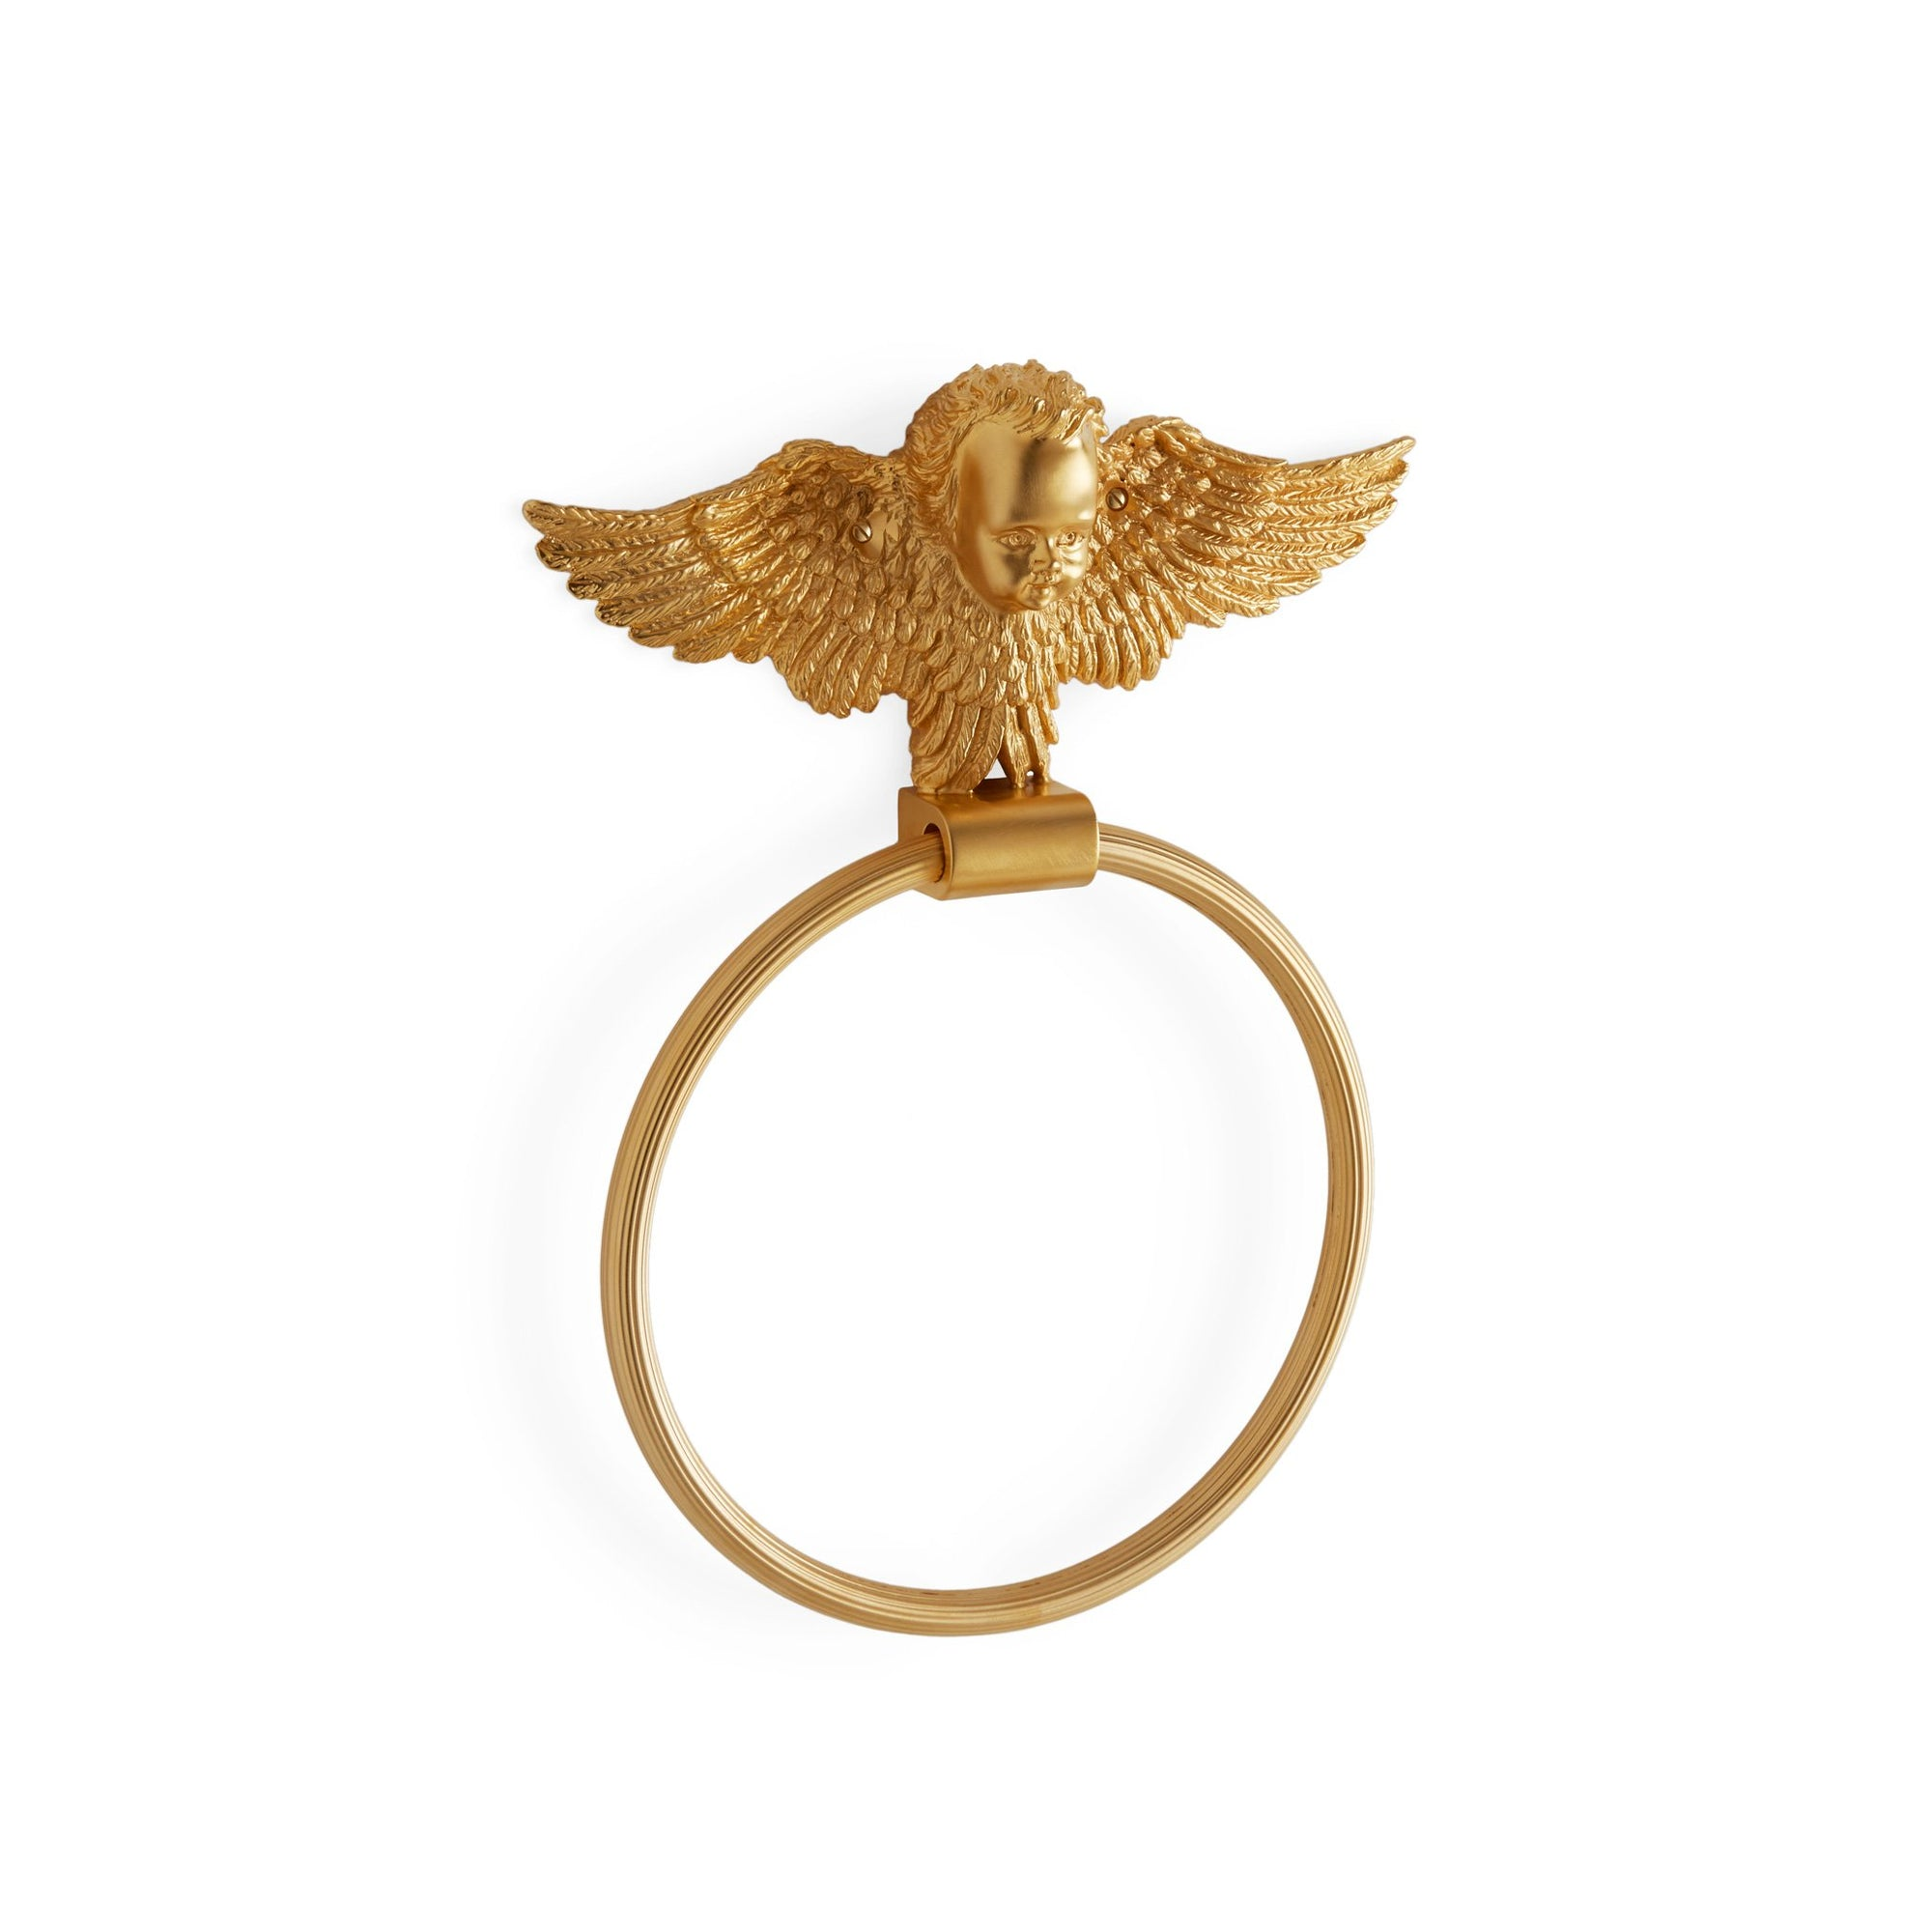 3420-GP Sherle Wagner International Cherub Towel Ring in Gold Plate metal finish